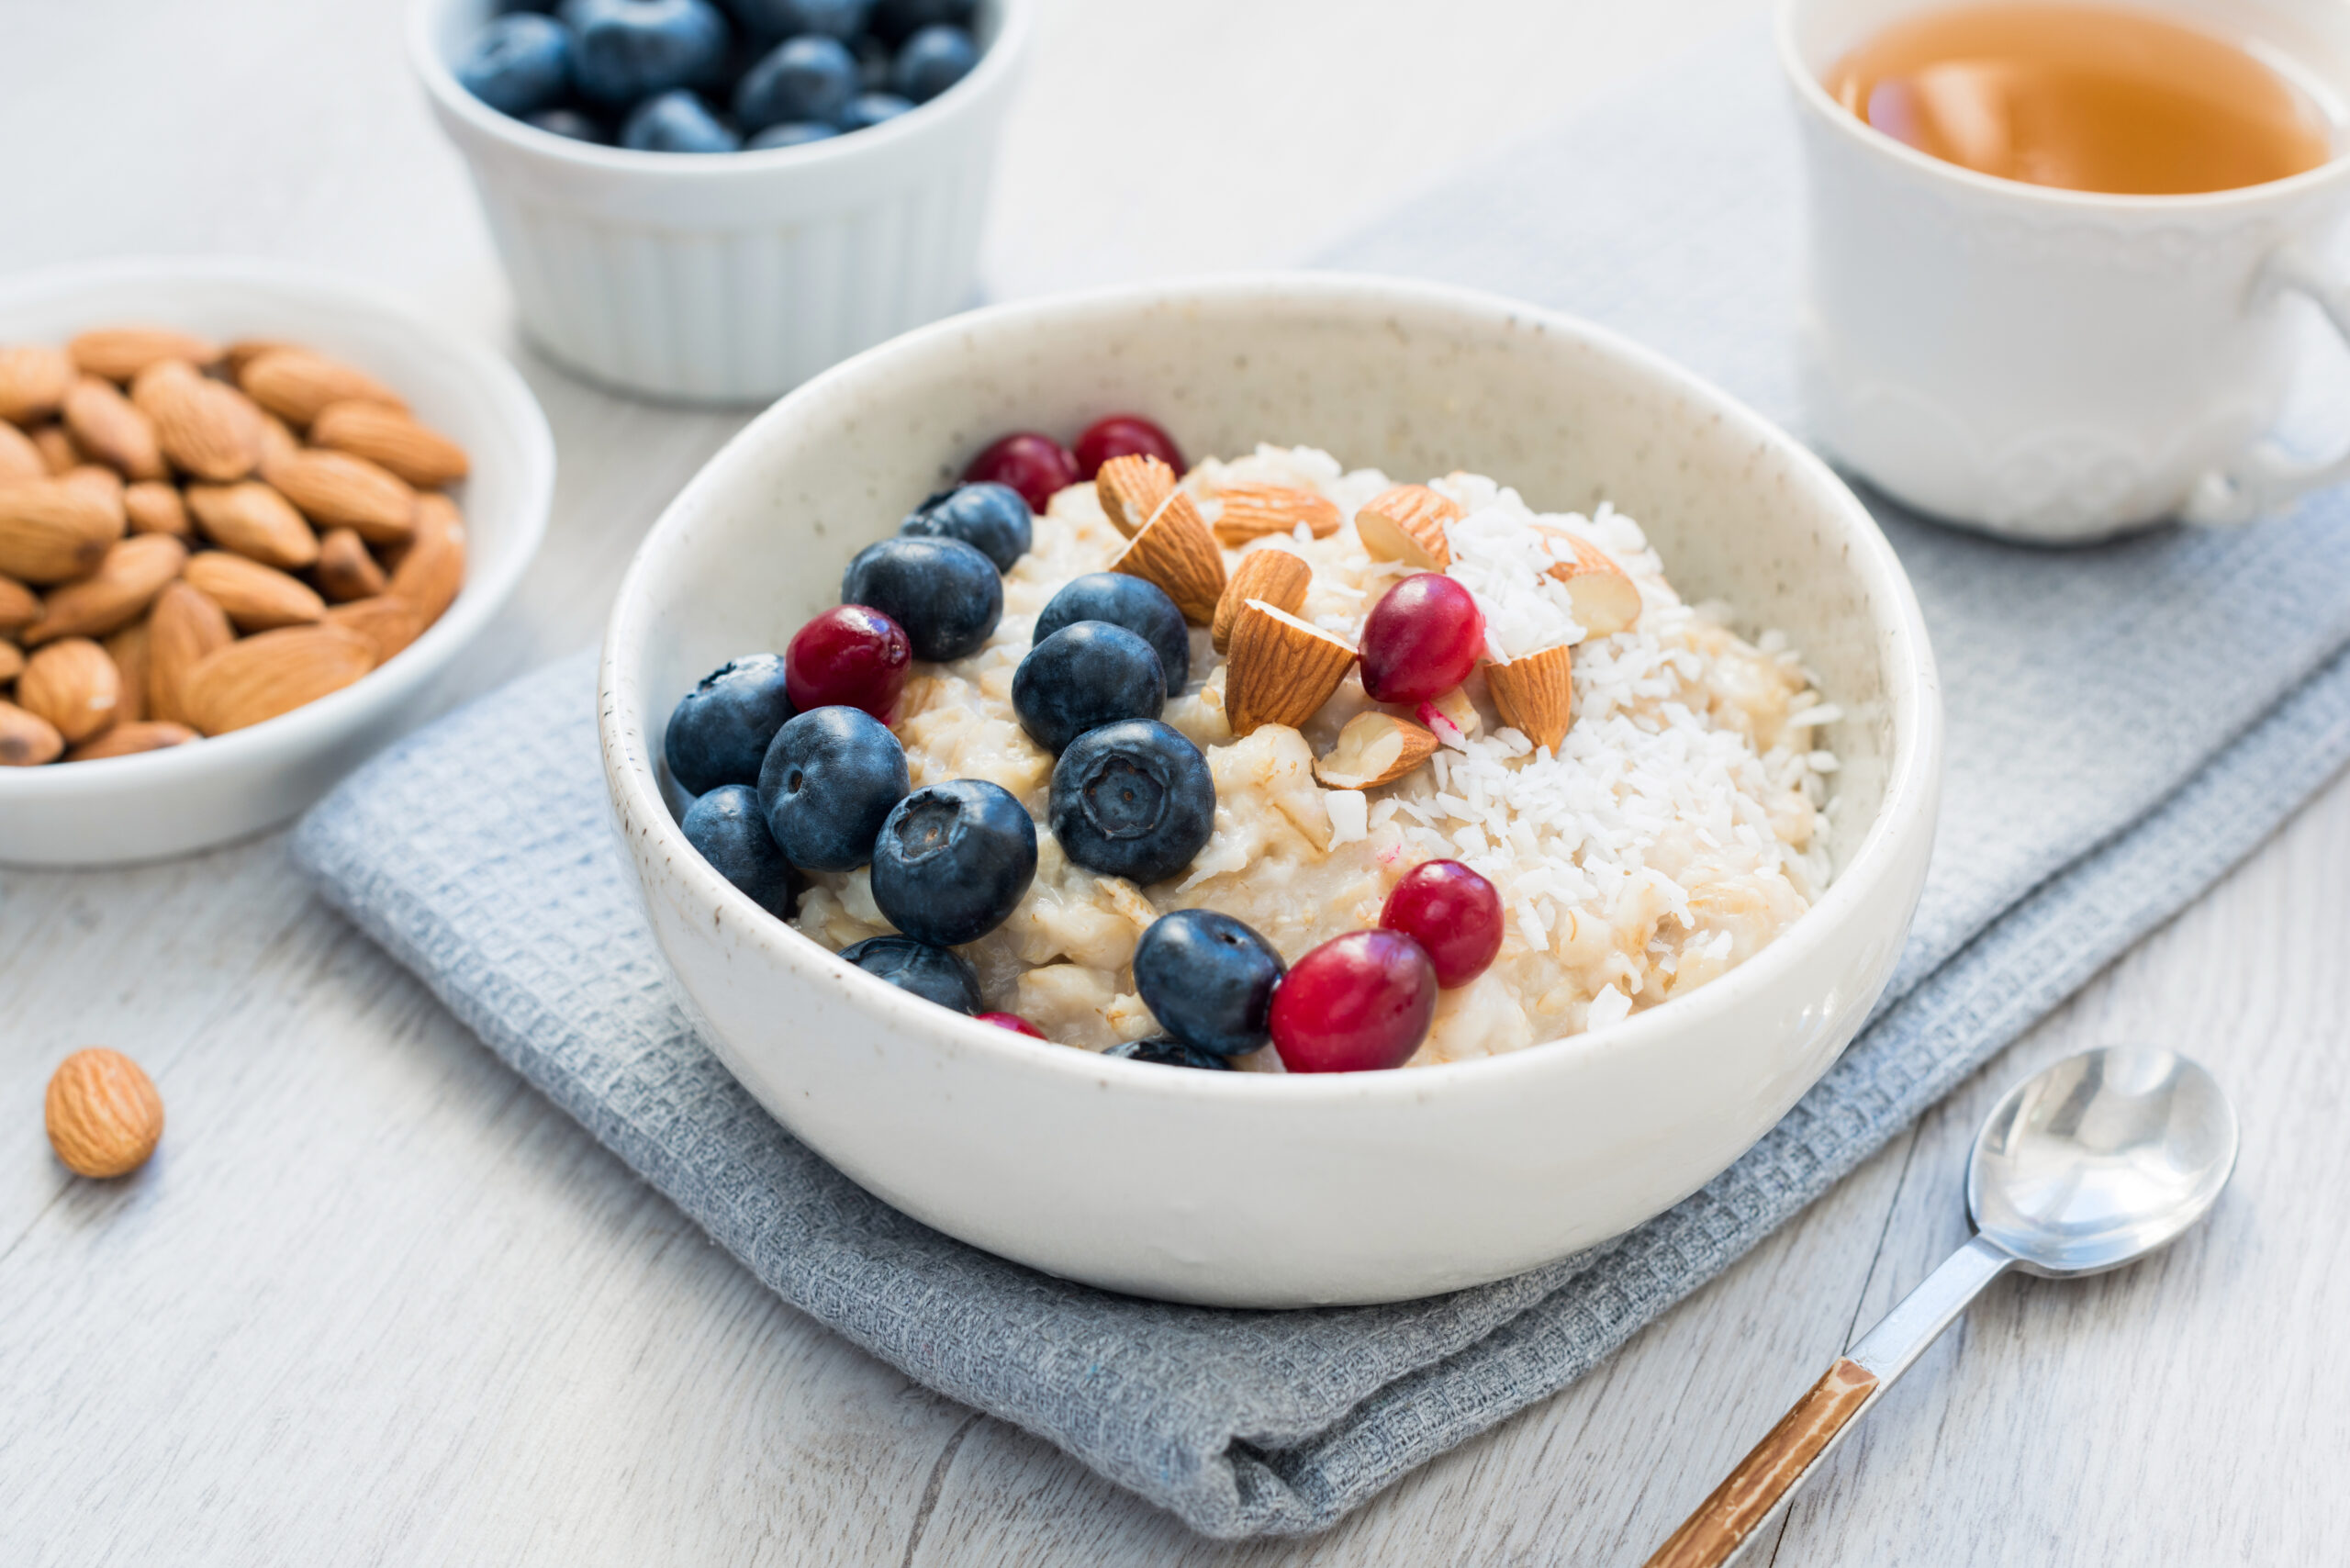 Fortip Vanilla Recipe: Creamy Vanilla Porridge with blueberries and cranberries